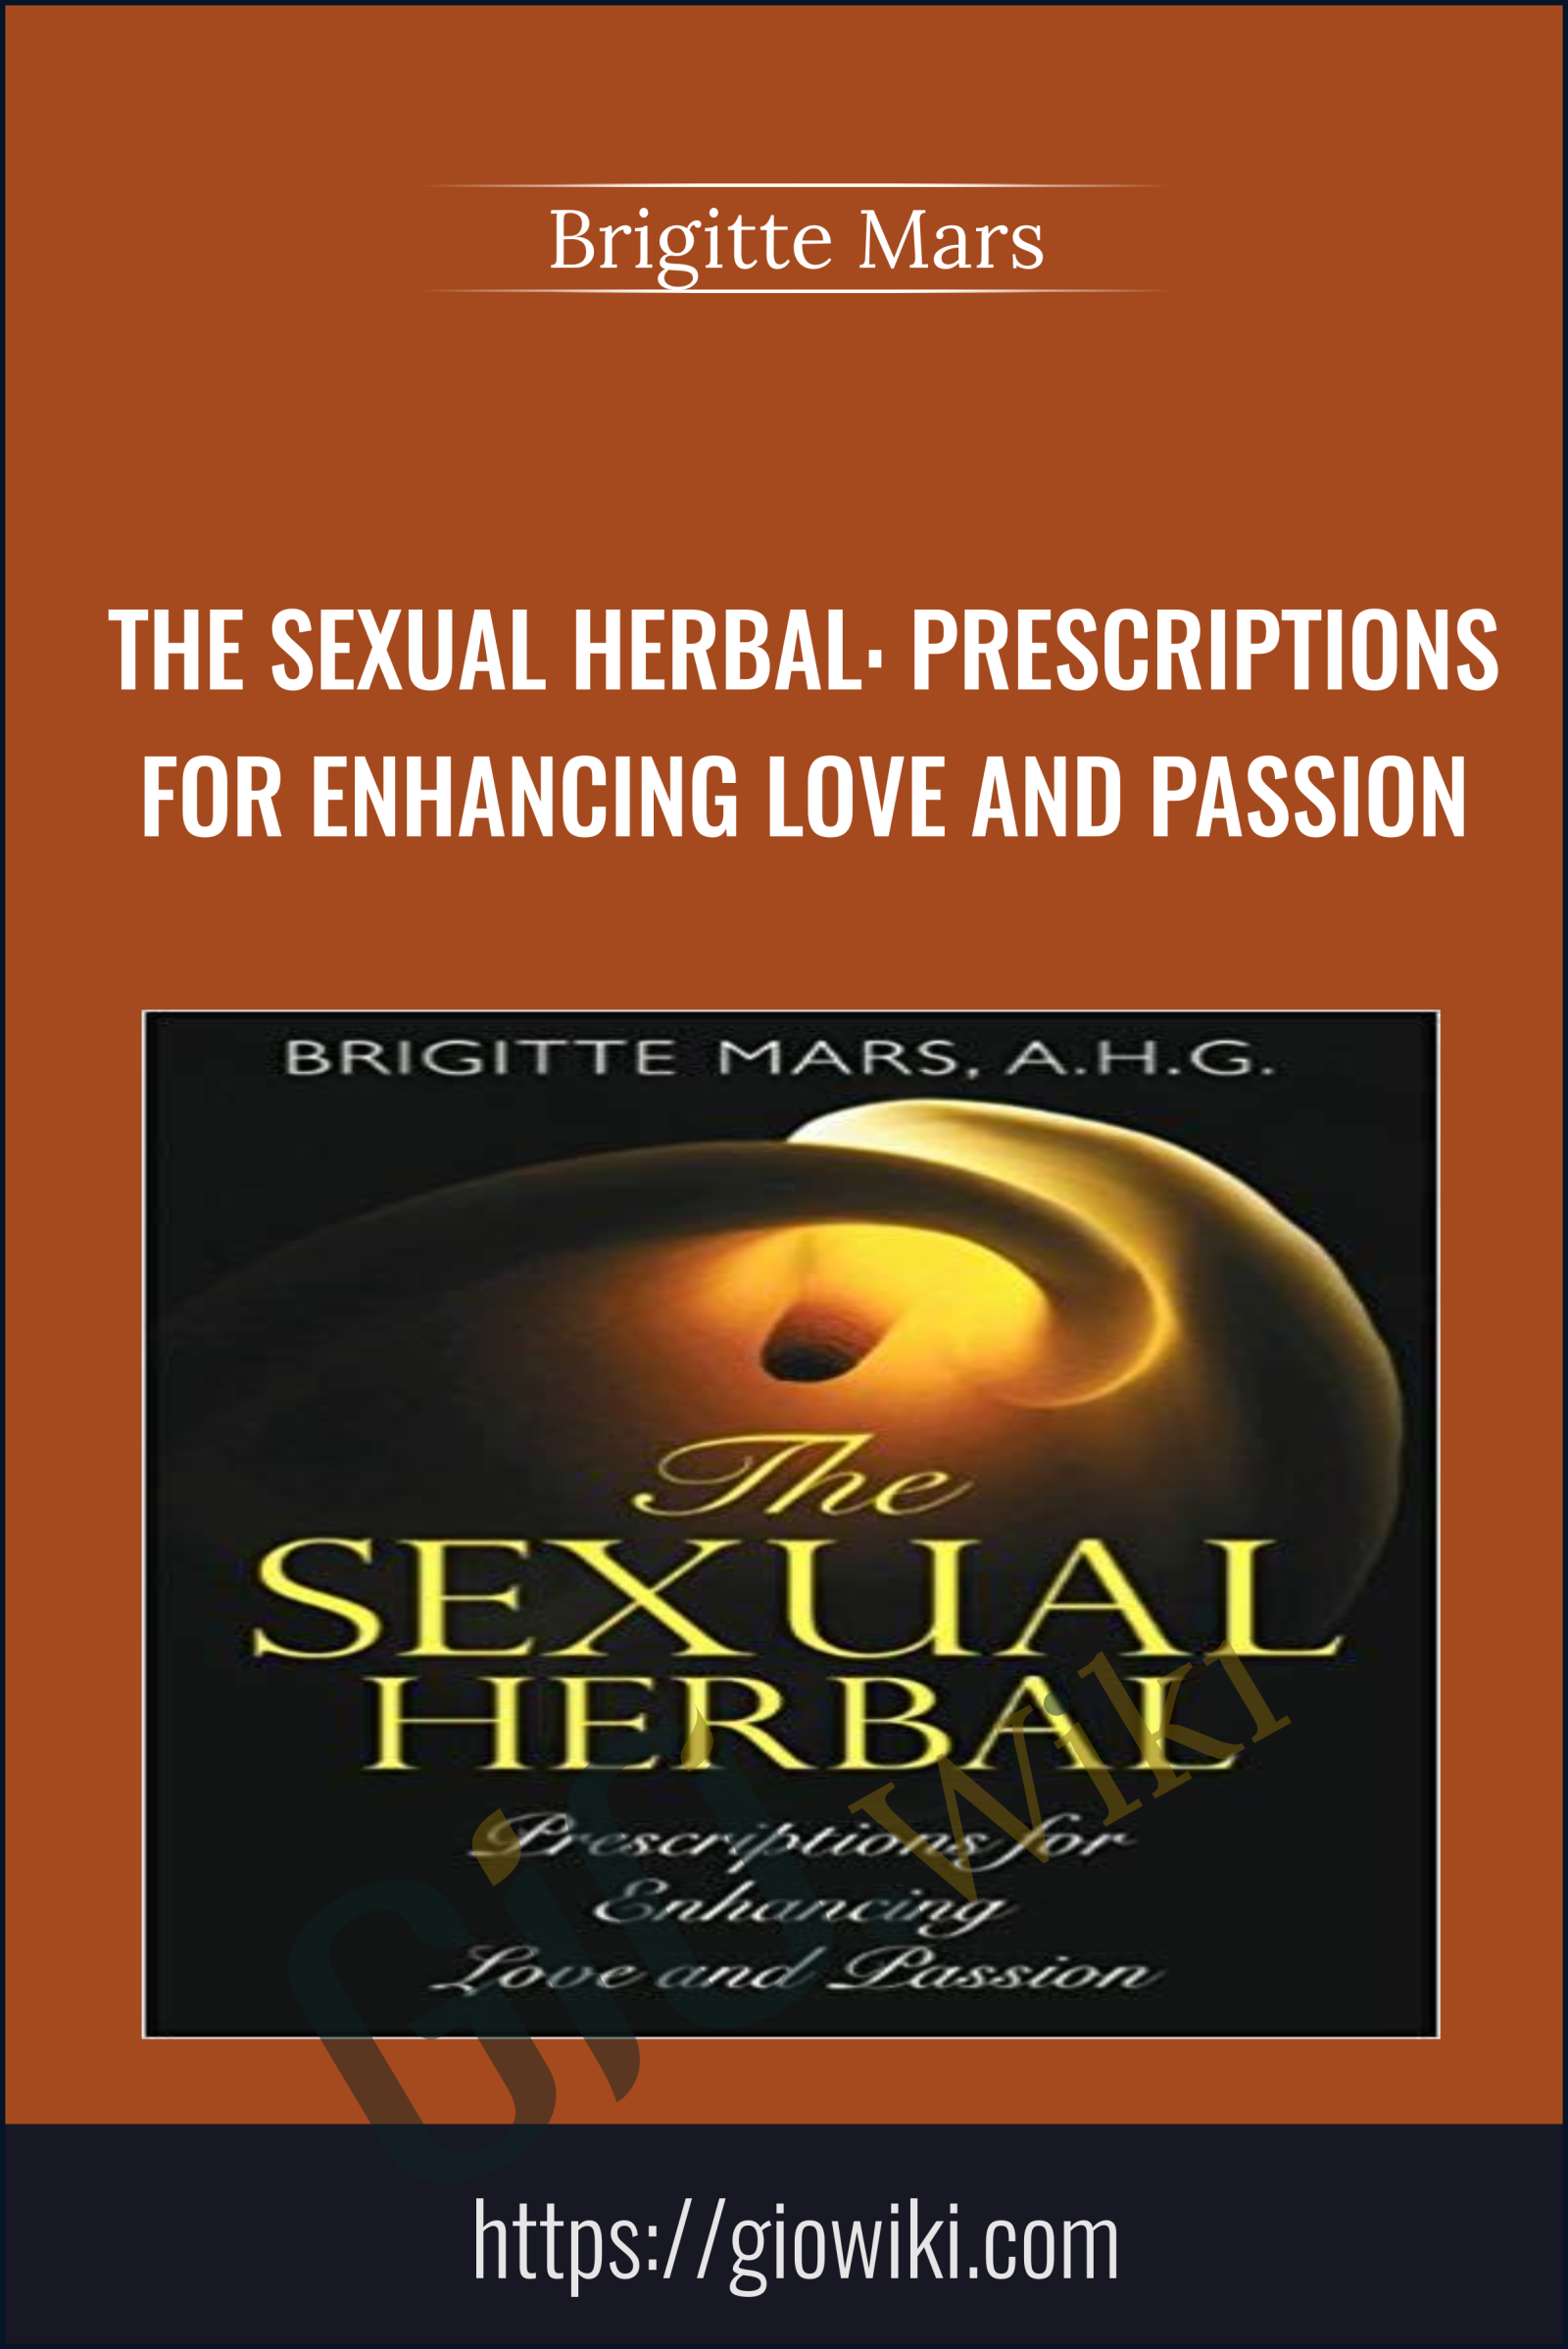 The Sexual Herbal: Prescriptions for Enhancing Love and Passion - Brigitte Mars